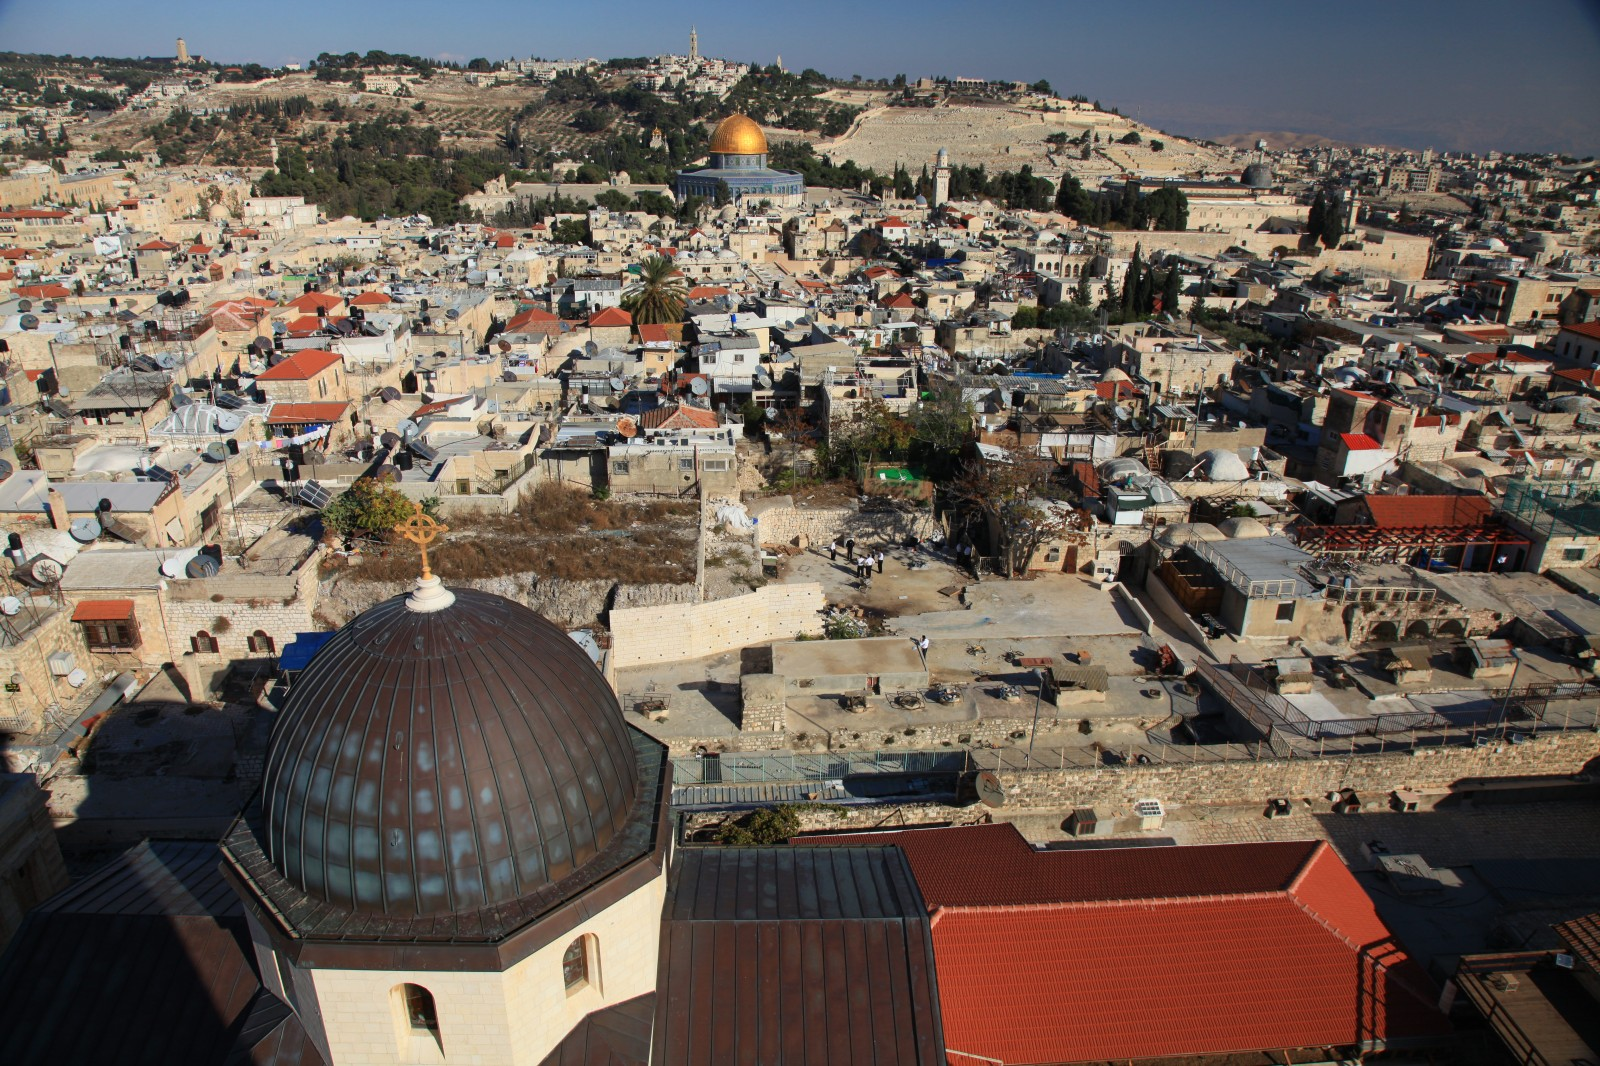 The Protestant church offers one of the best aerial views of the Old City for only 5 shekels